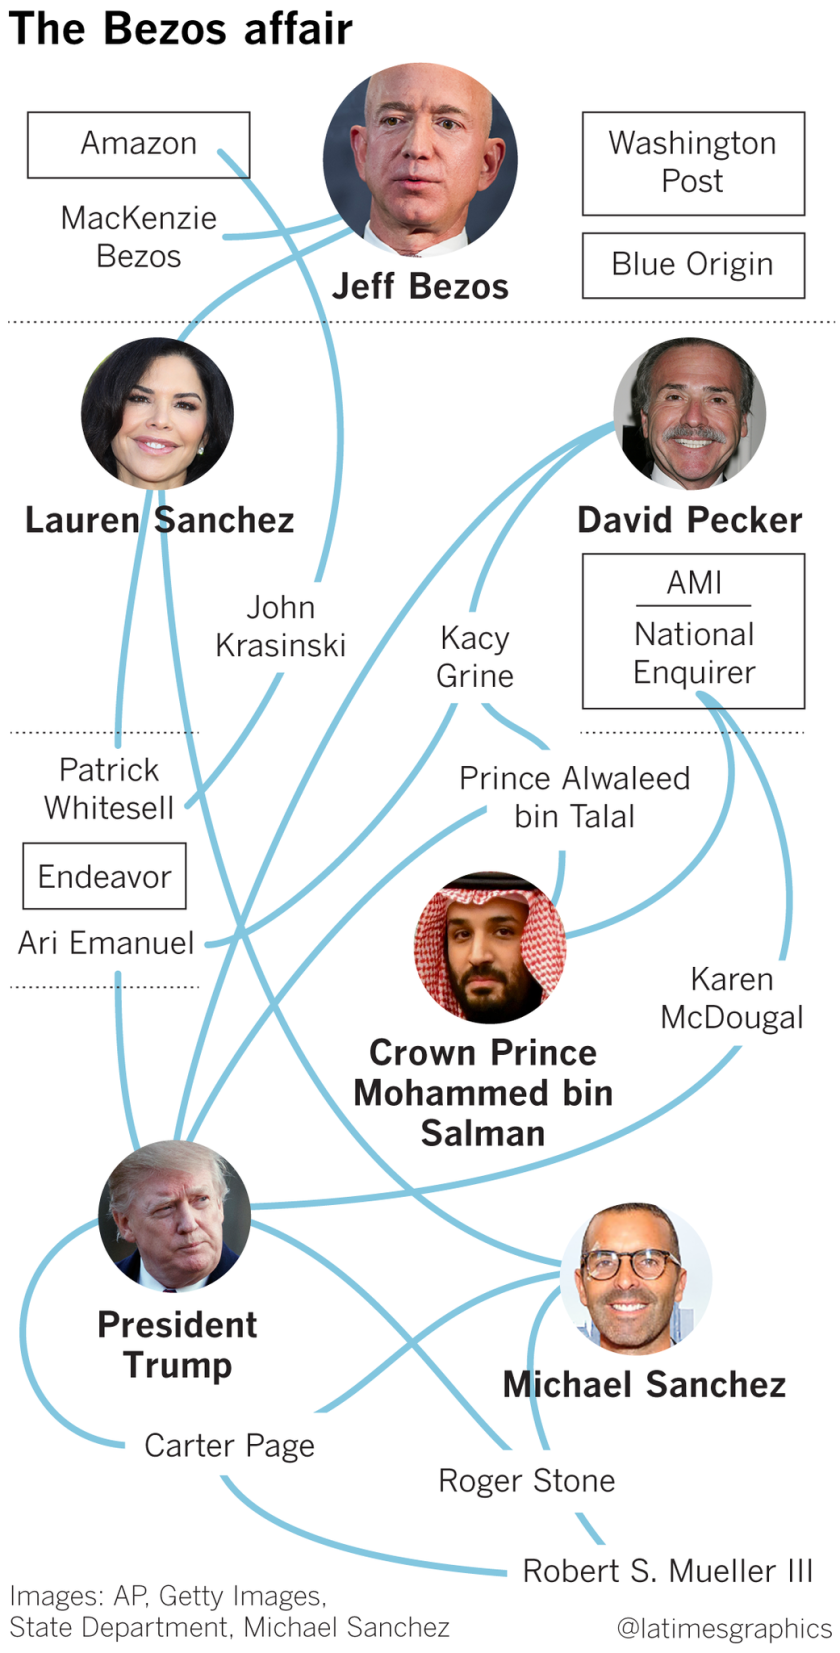 A tangled web of overlapping relationships and interests across Hollywood, politics, national security and the Kingdom of Saudi Arabia